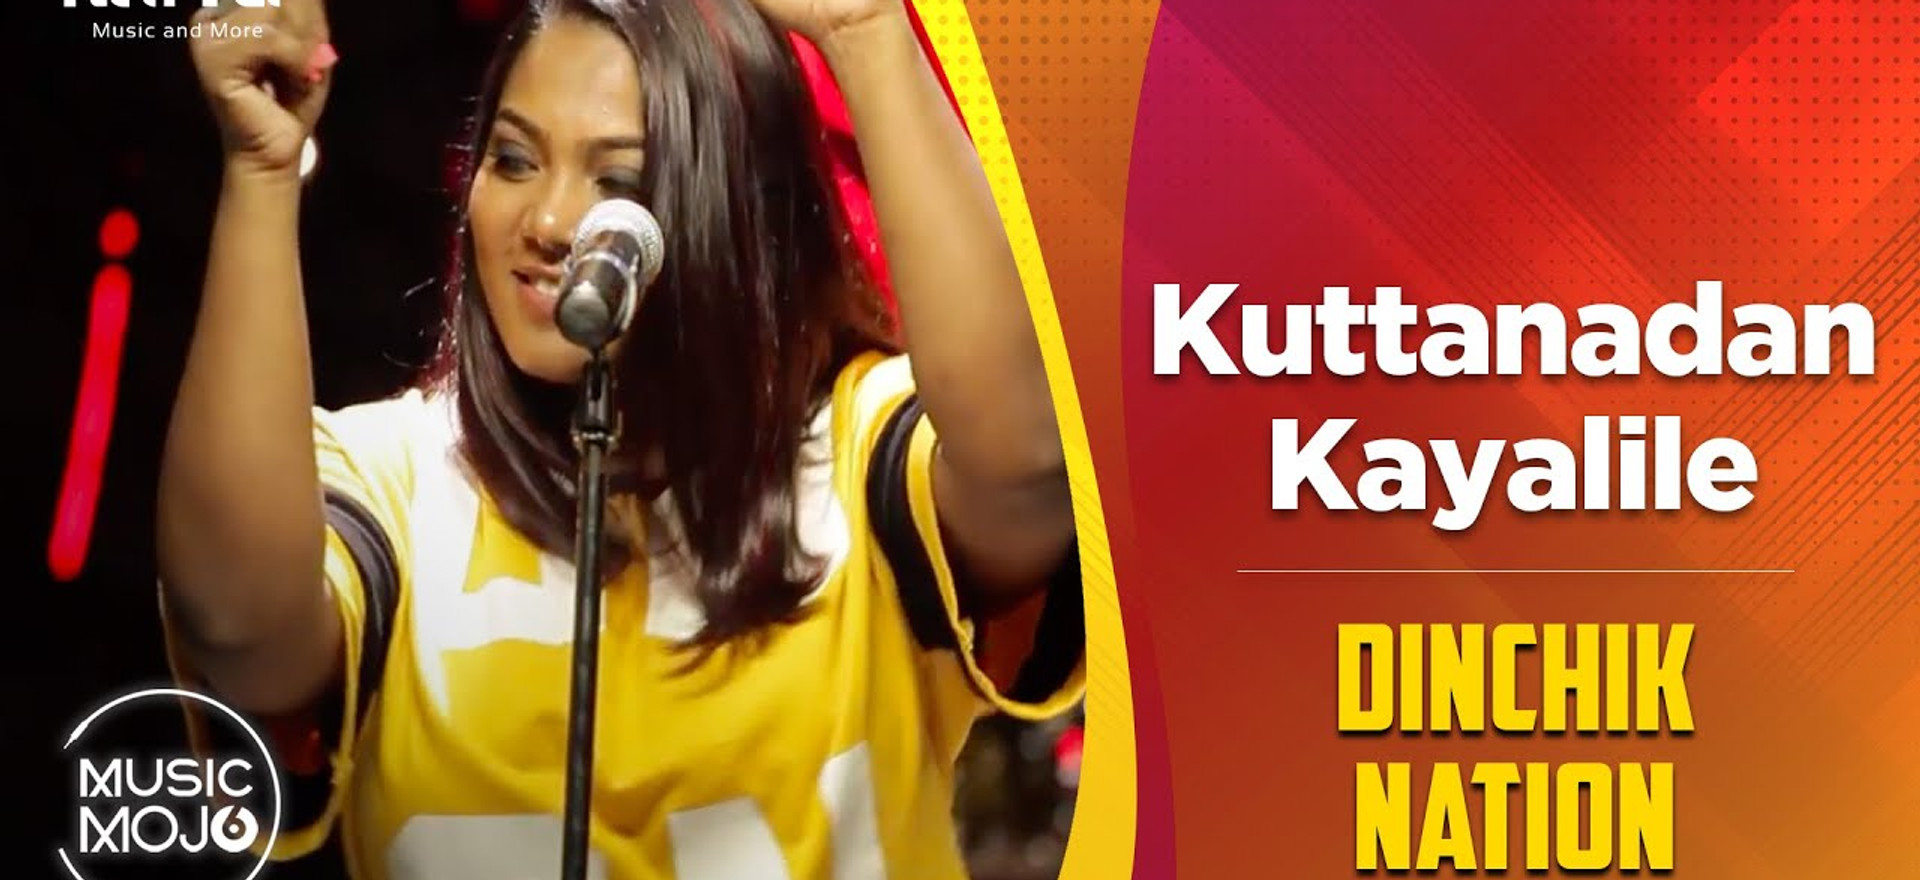 Kuttanadan Kayalile - Dinchik Nation - Music Mojo Season 6 - Kappa TV